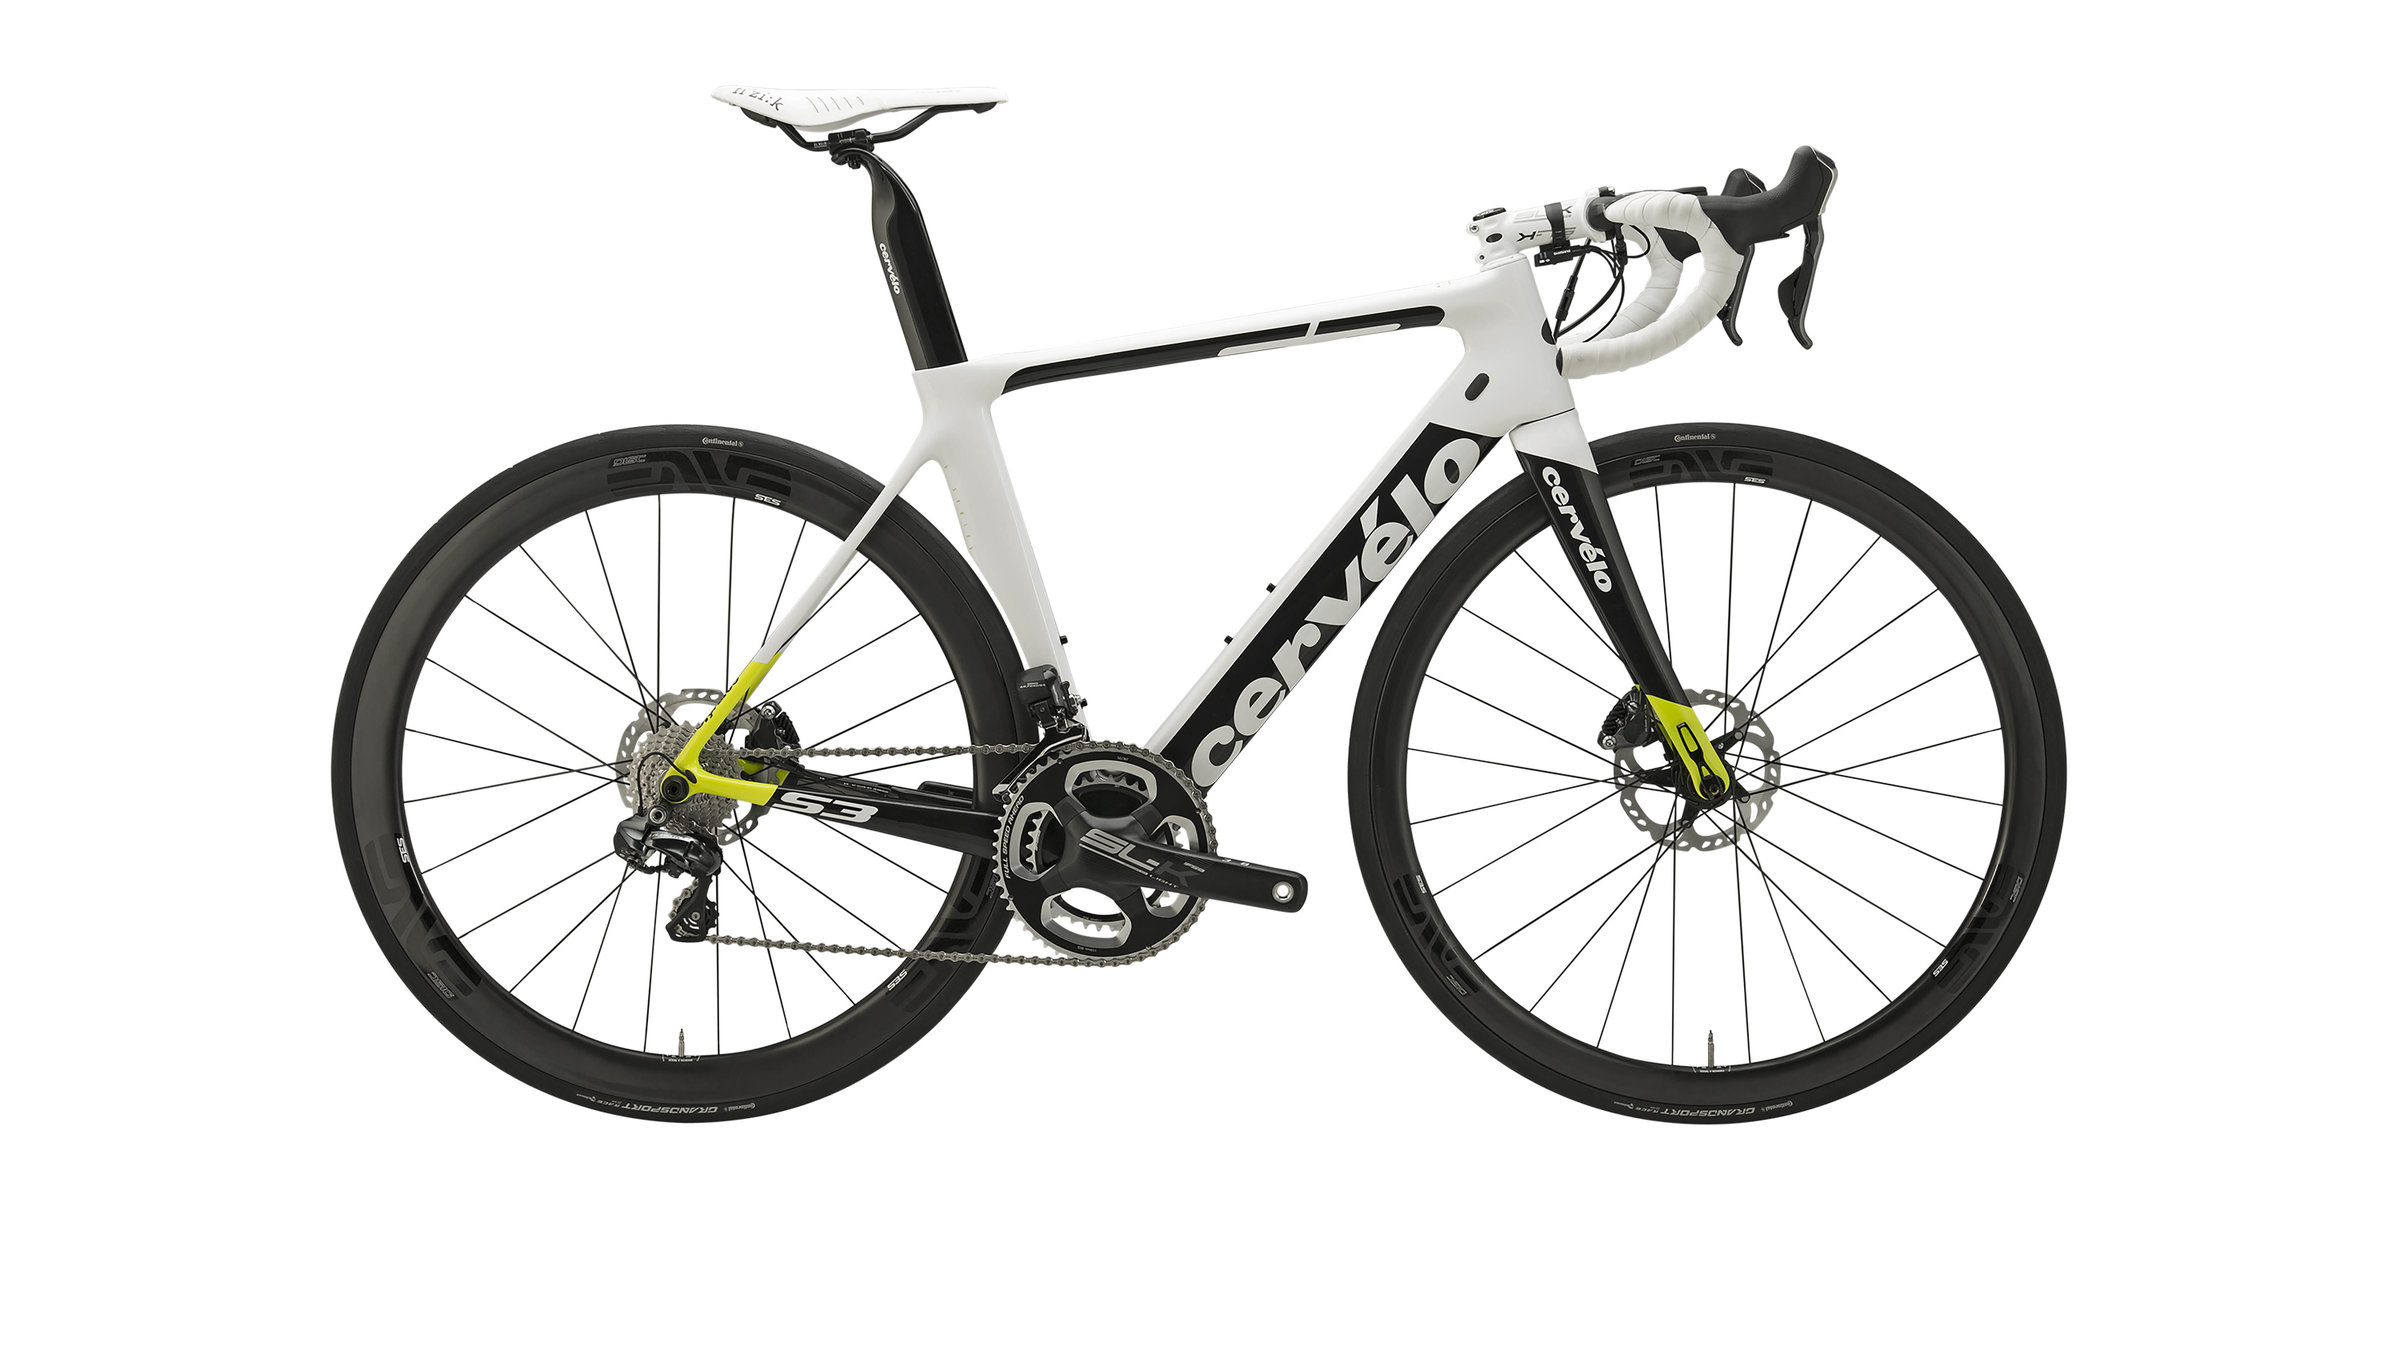 5a2f81f53fa Cervelo S3 Disc Ultegra Di2 6870 - Bike Shop Sid's Bikes NYC New ...